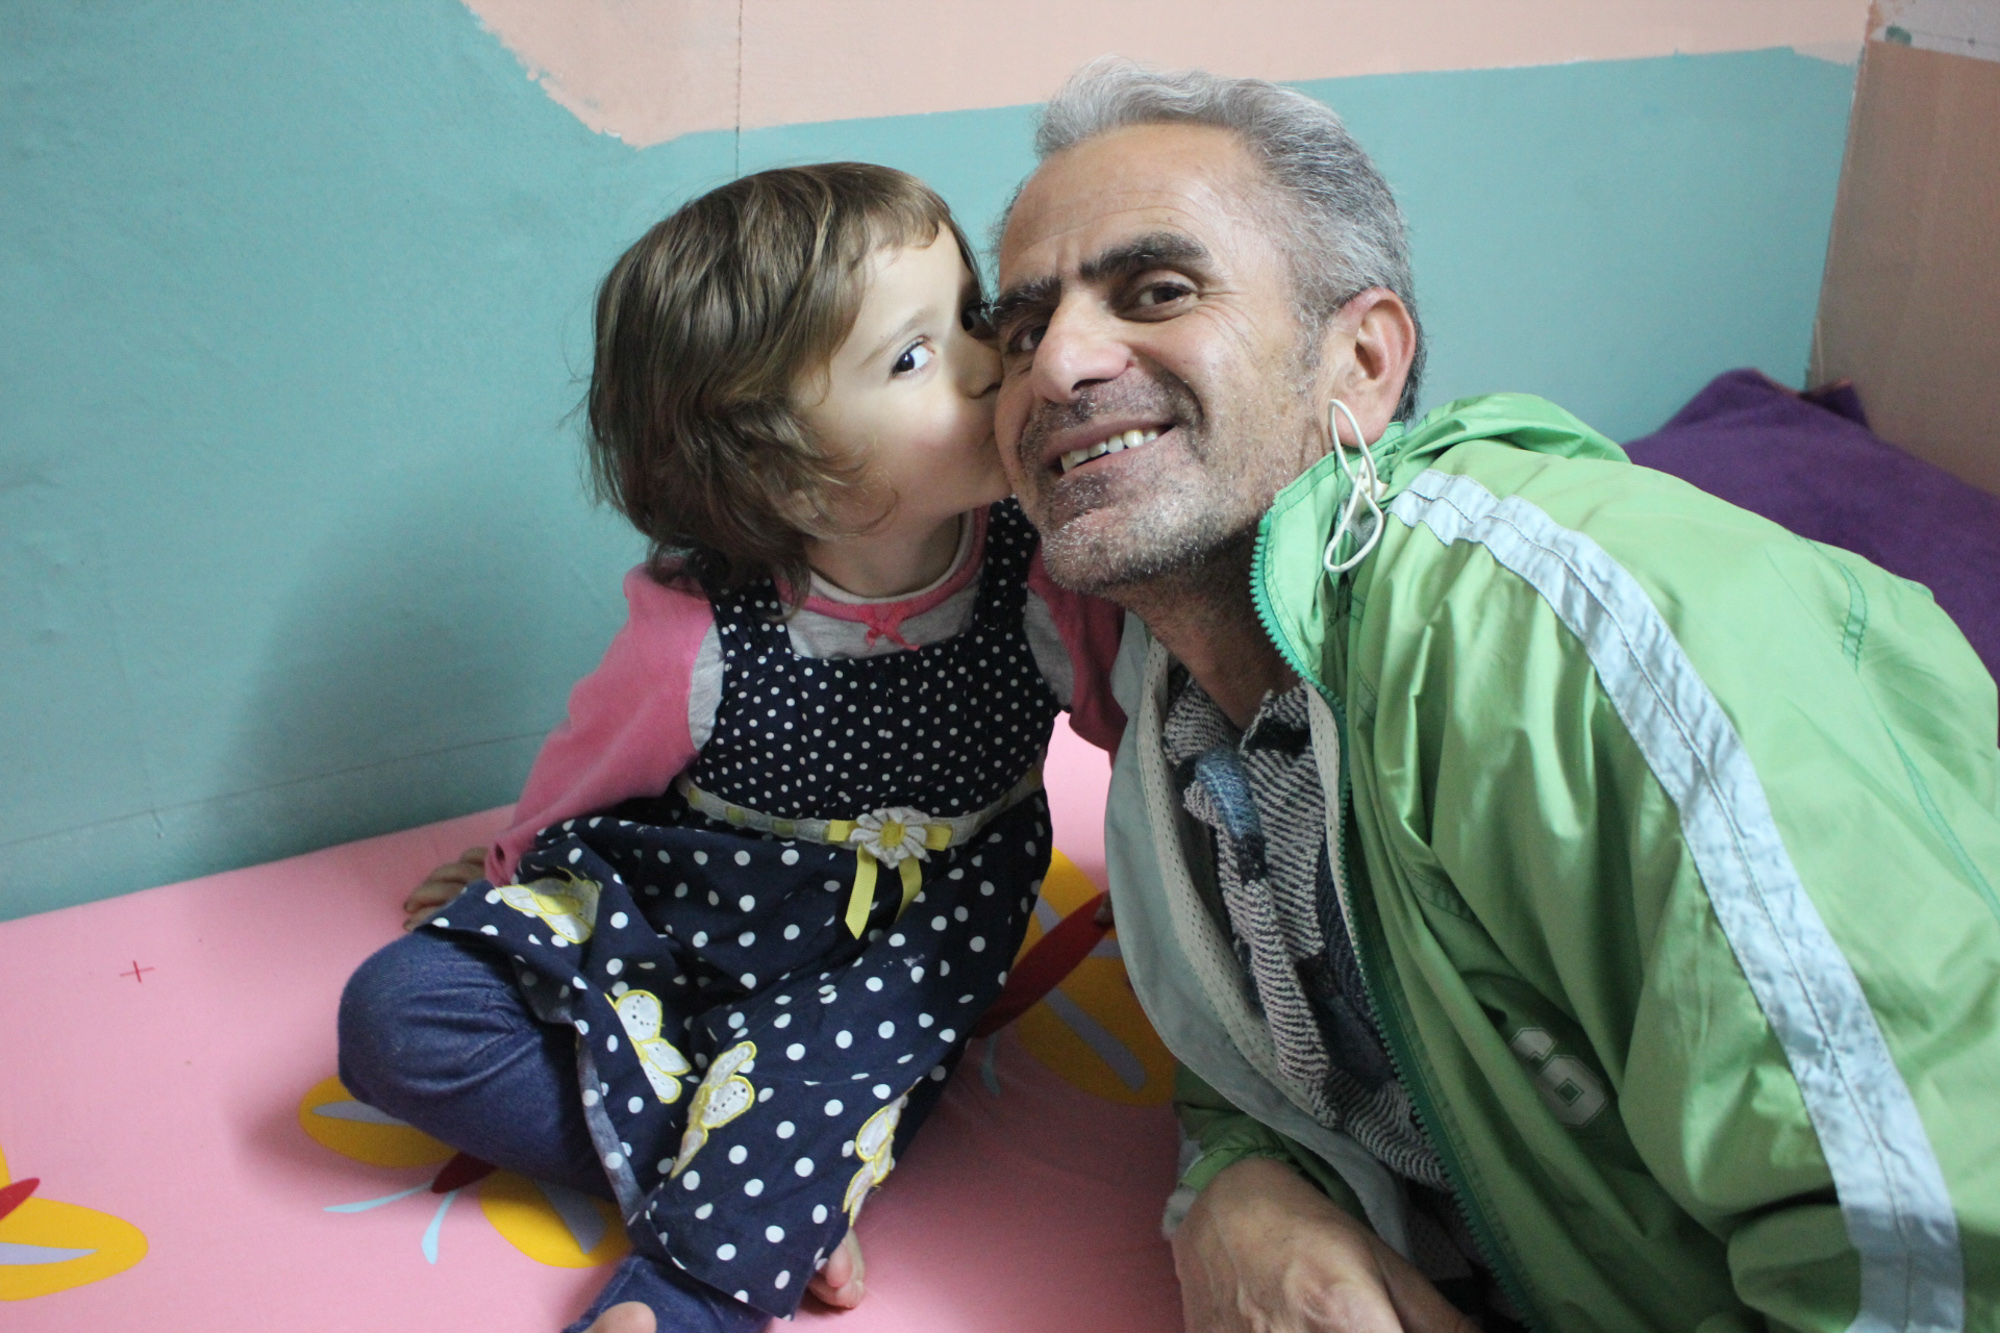 A young Syrian girl kisses her father's cheek inside their colorfully decorated room at Oinofyta, a refugee site outside of Athens, Greece. (Photo by Alexandra Meeks/GroundTruth)